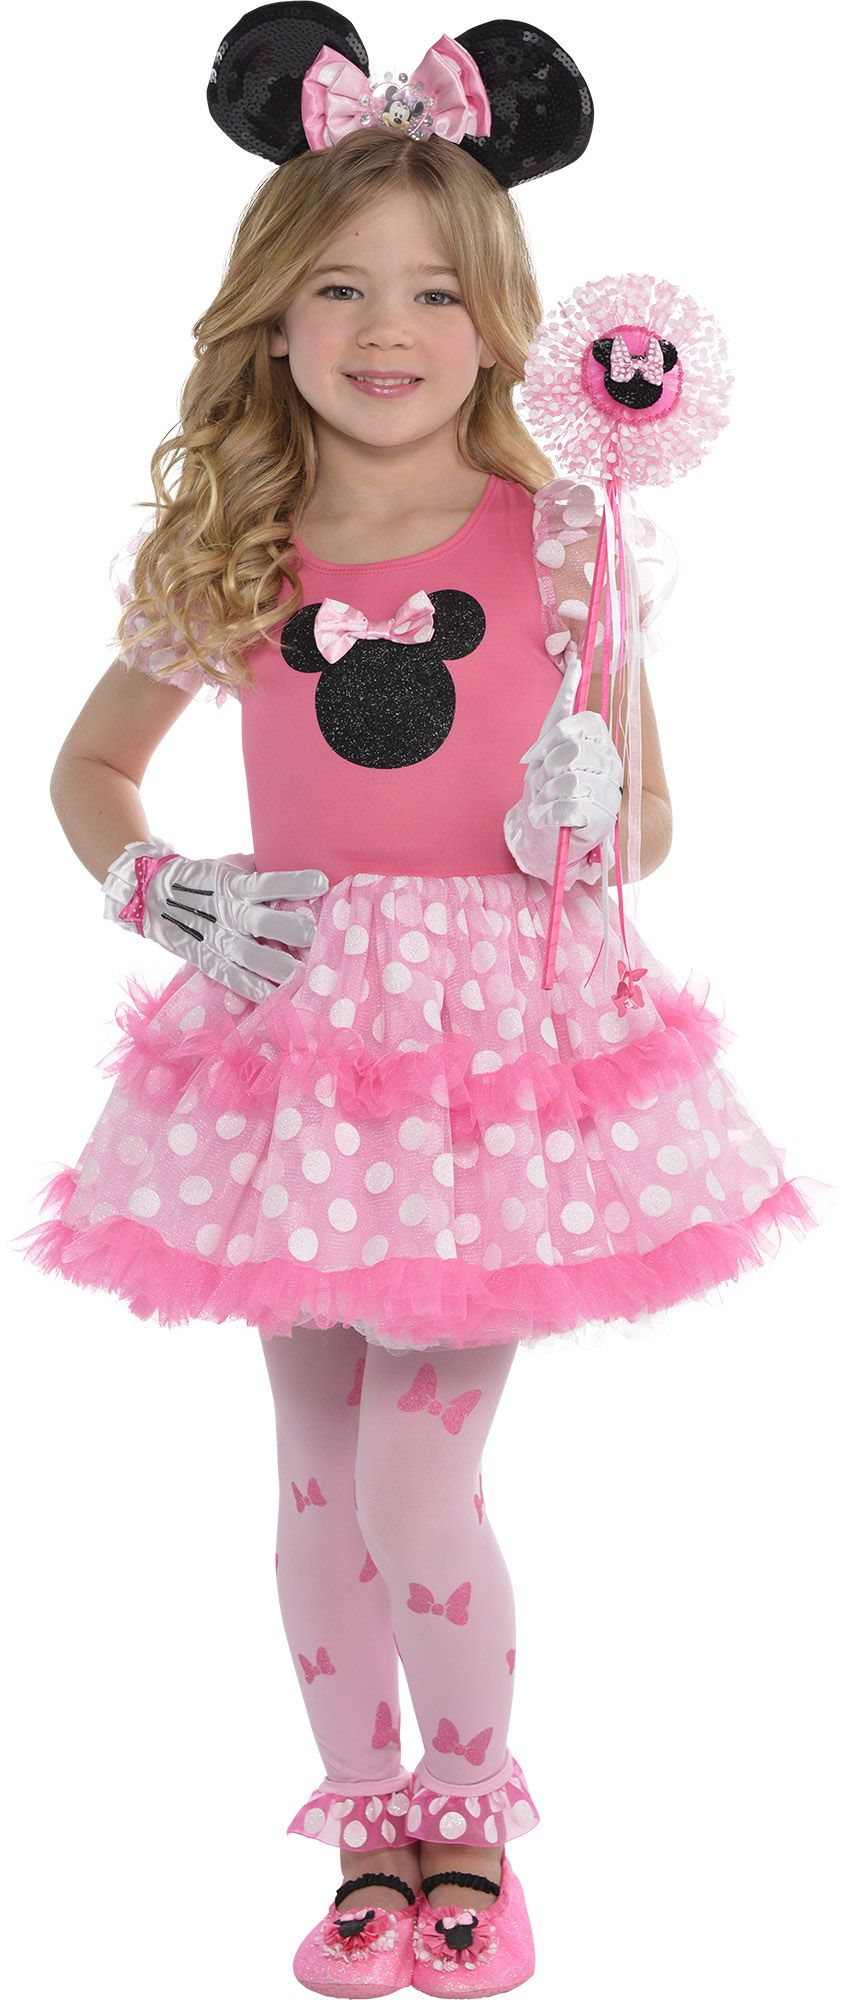 Create Your Own Look - Girl Minnie Mouse Tutu Dress #1